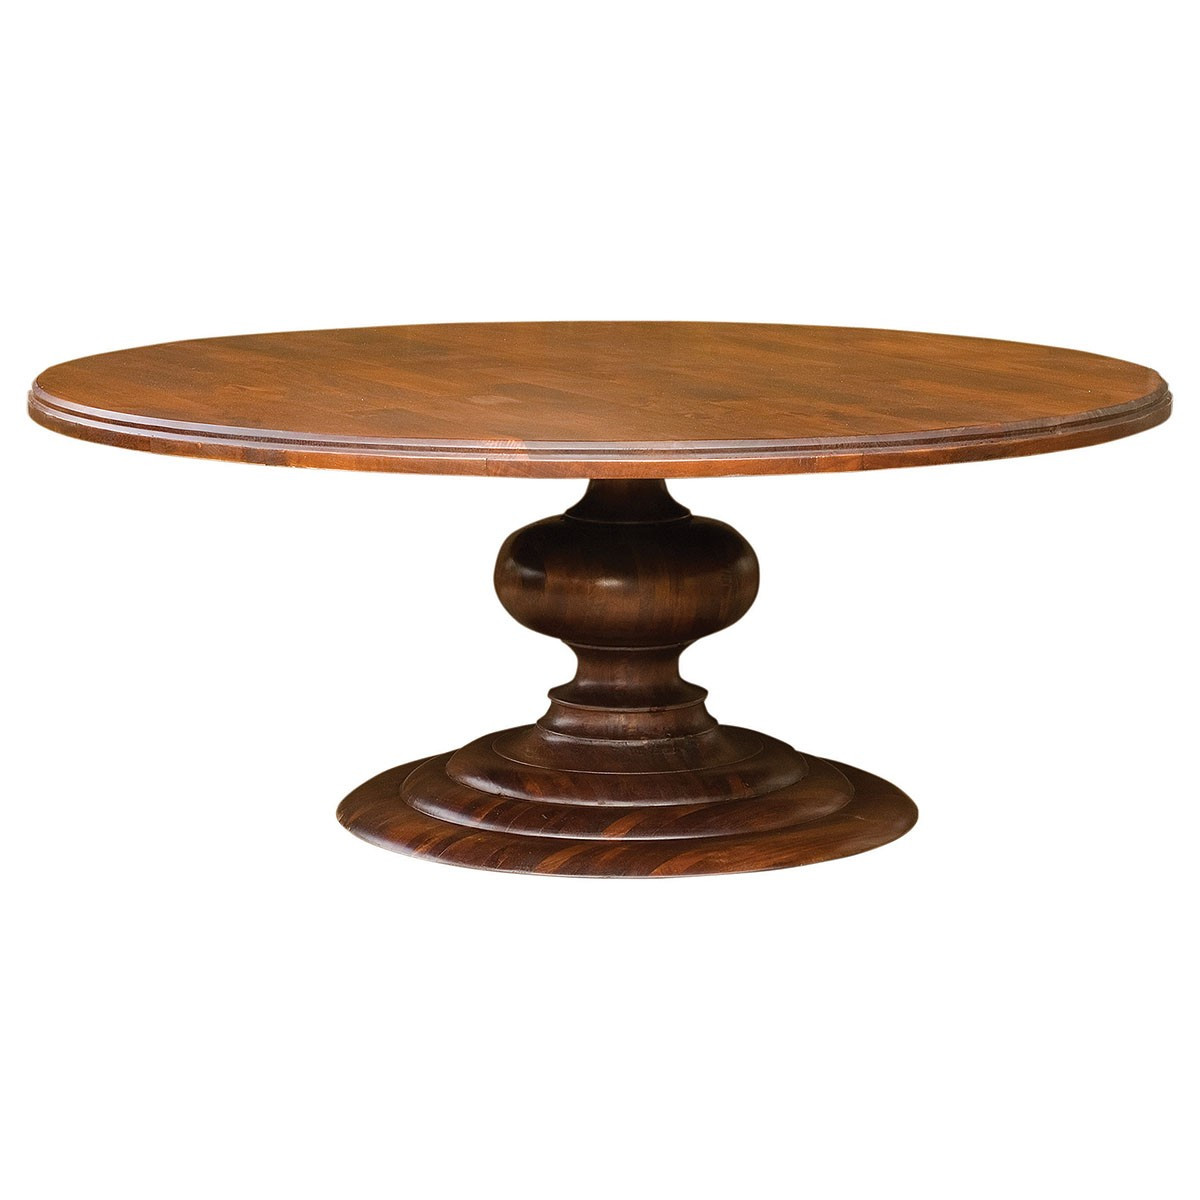 Dining table round pedestal dining table 72 inch for Pedestal dining table